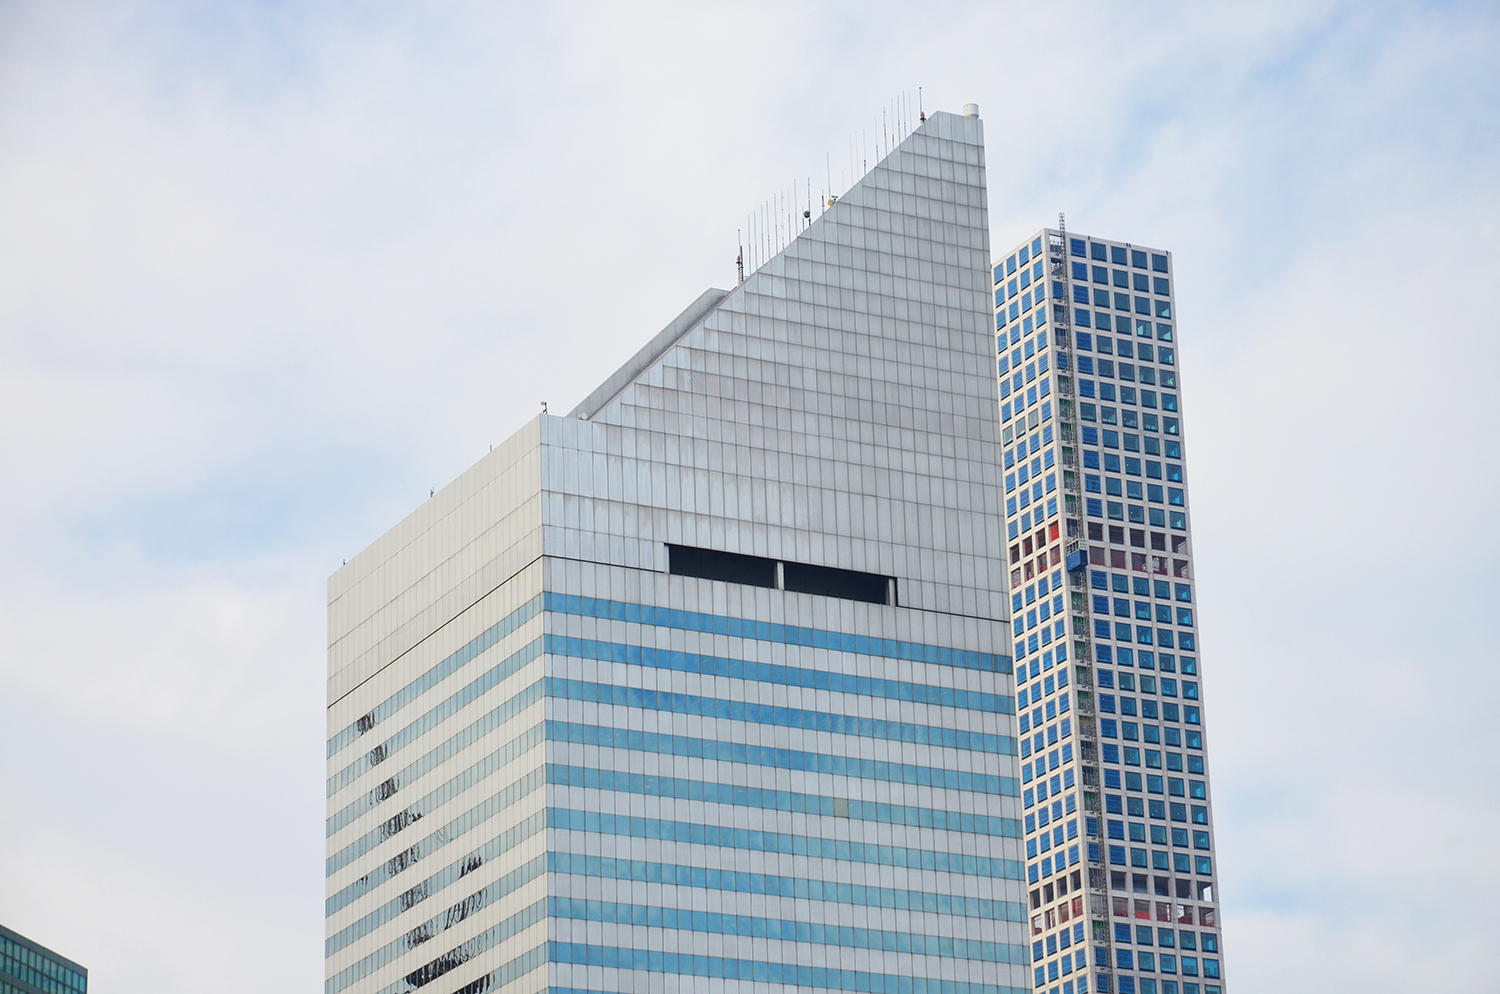 The former Citicorp Center (aka Citigroup Center) at 601 Lexington Avenue as seen in December 2015. Photo by Evan Bindelglass.